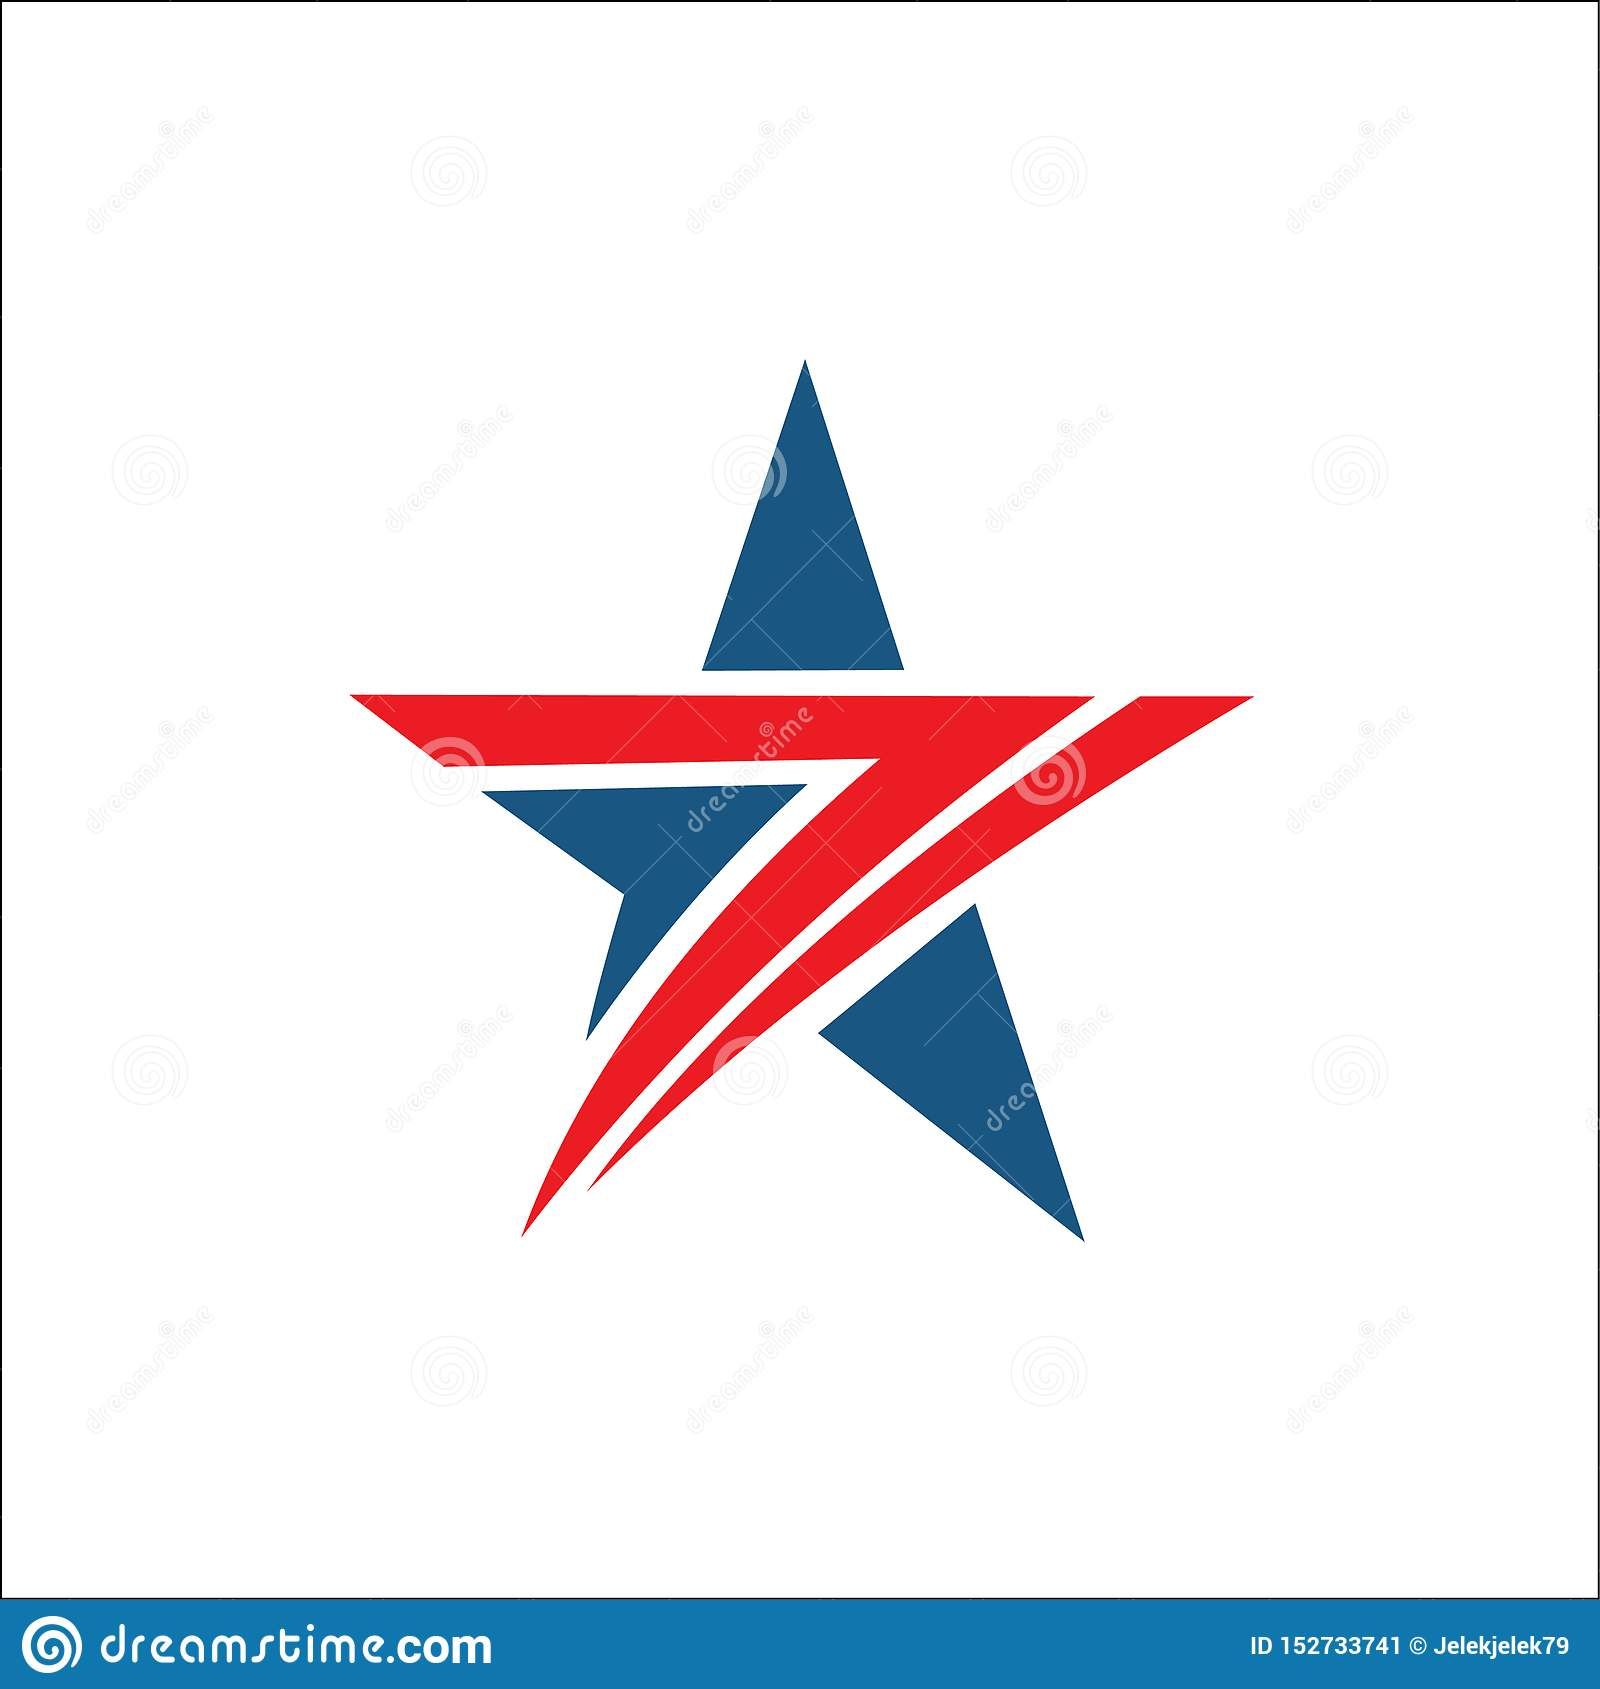 Star logo abstract red and blue color